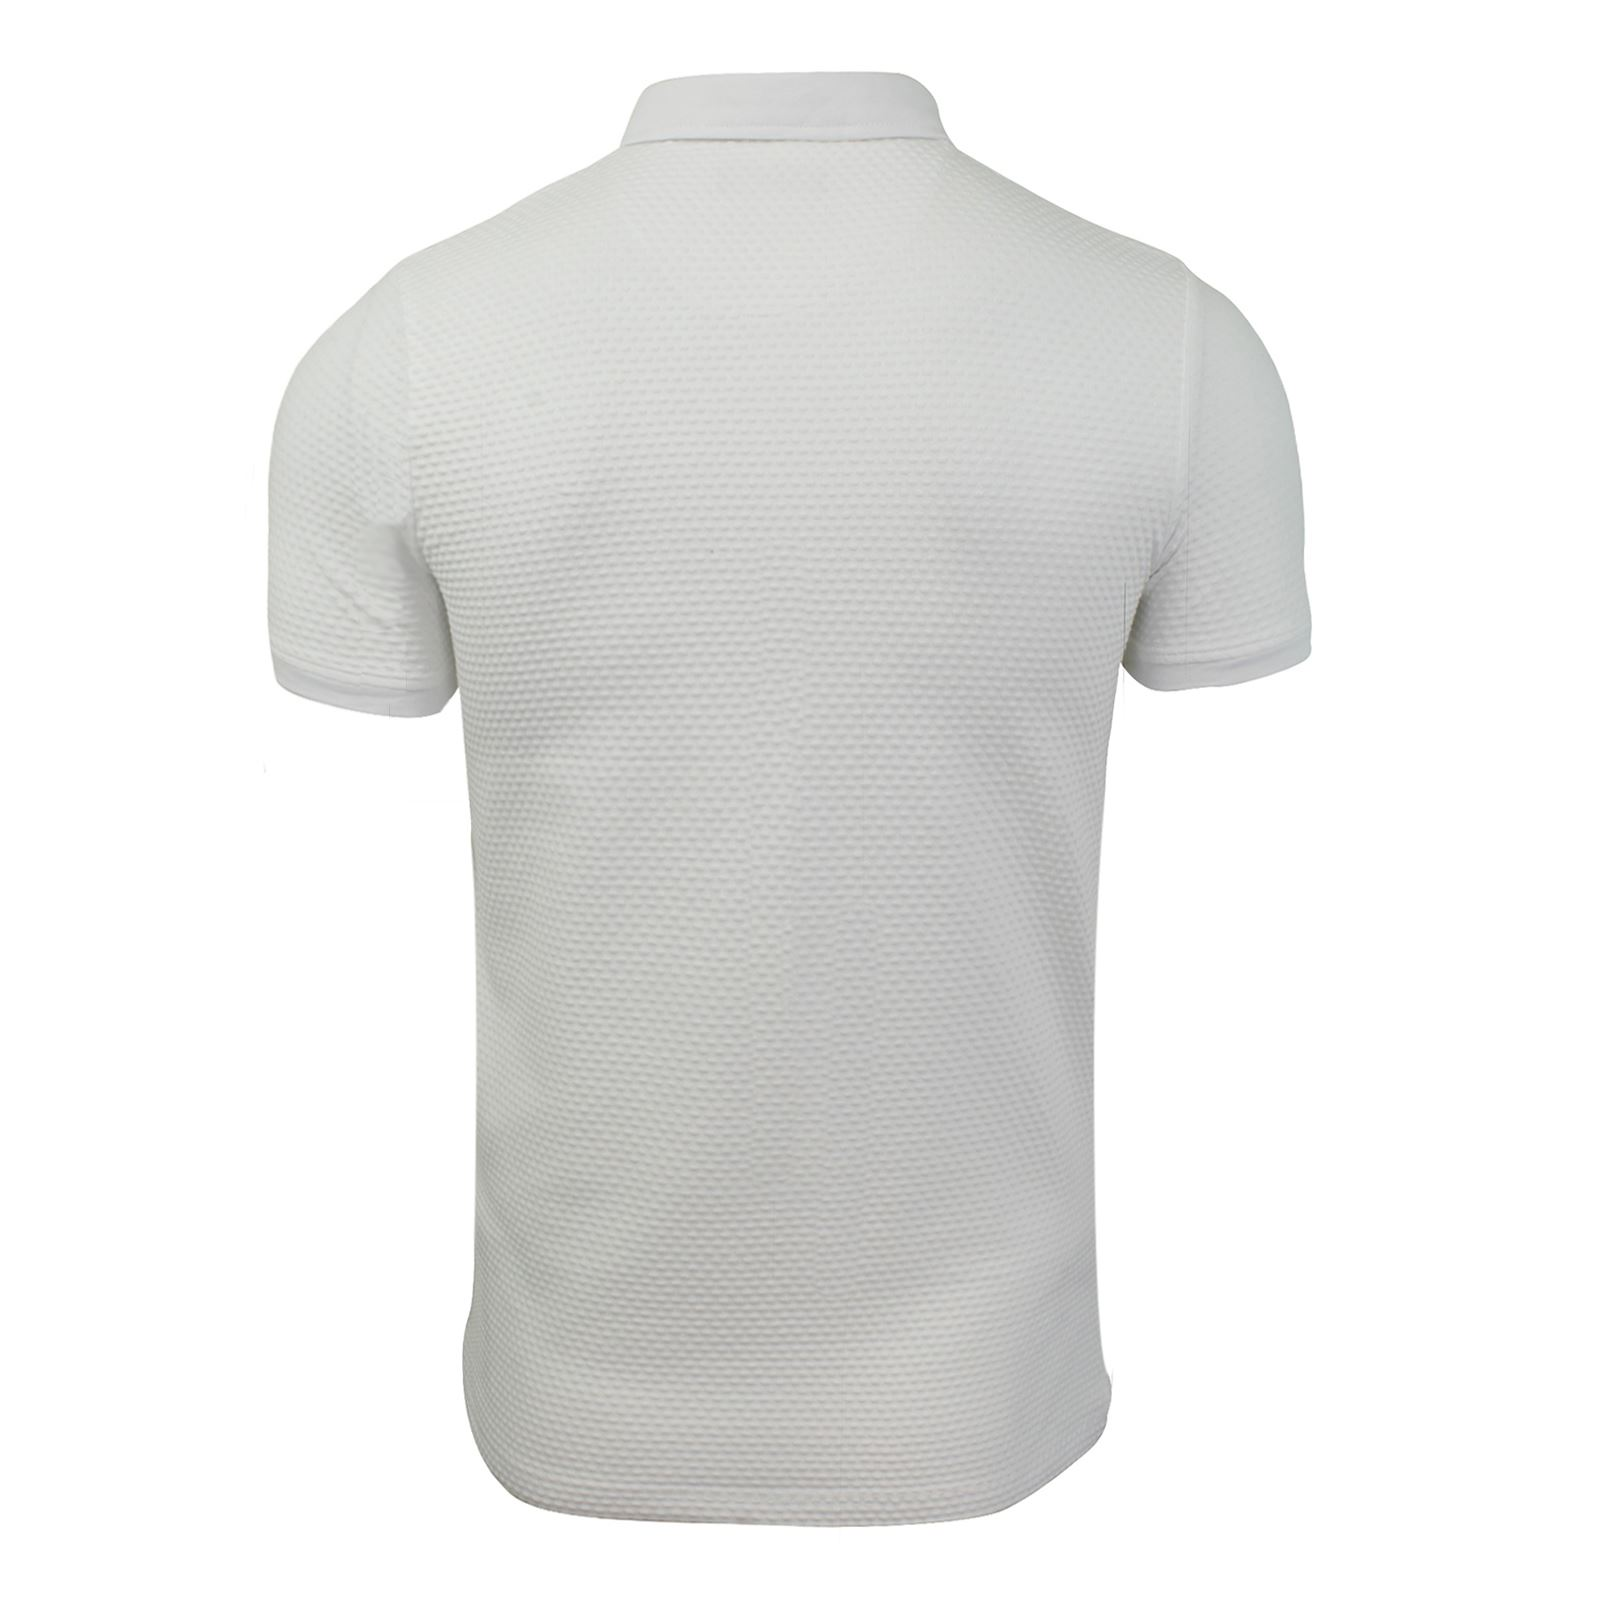 Mens-Polo-T-Shirt-Brave-Soul-Glover-Cotton-Collared-Short-Sleeve-Casual-Top thumbnail 91